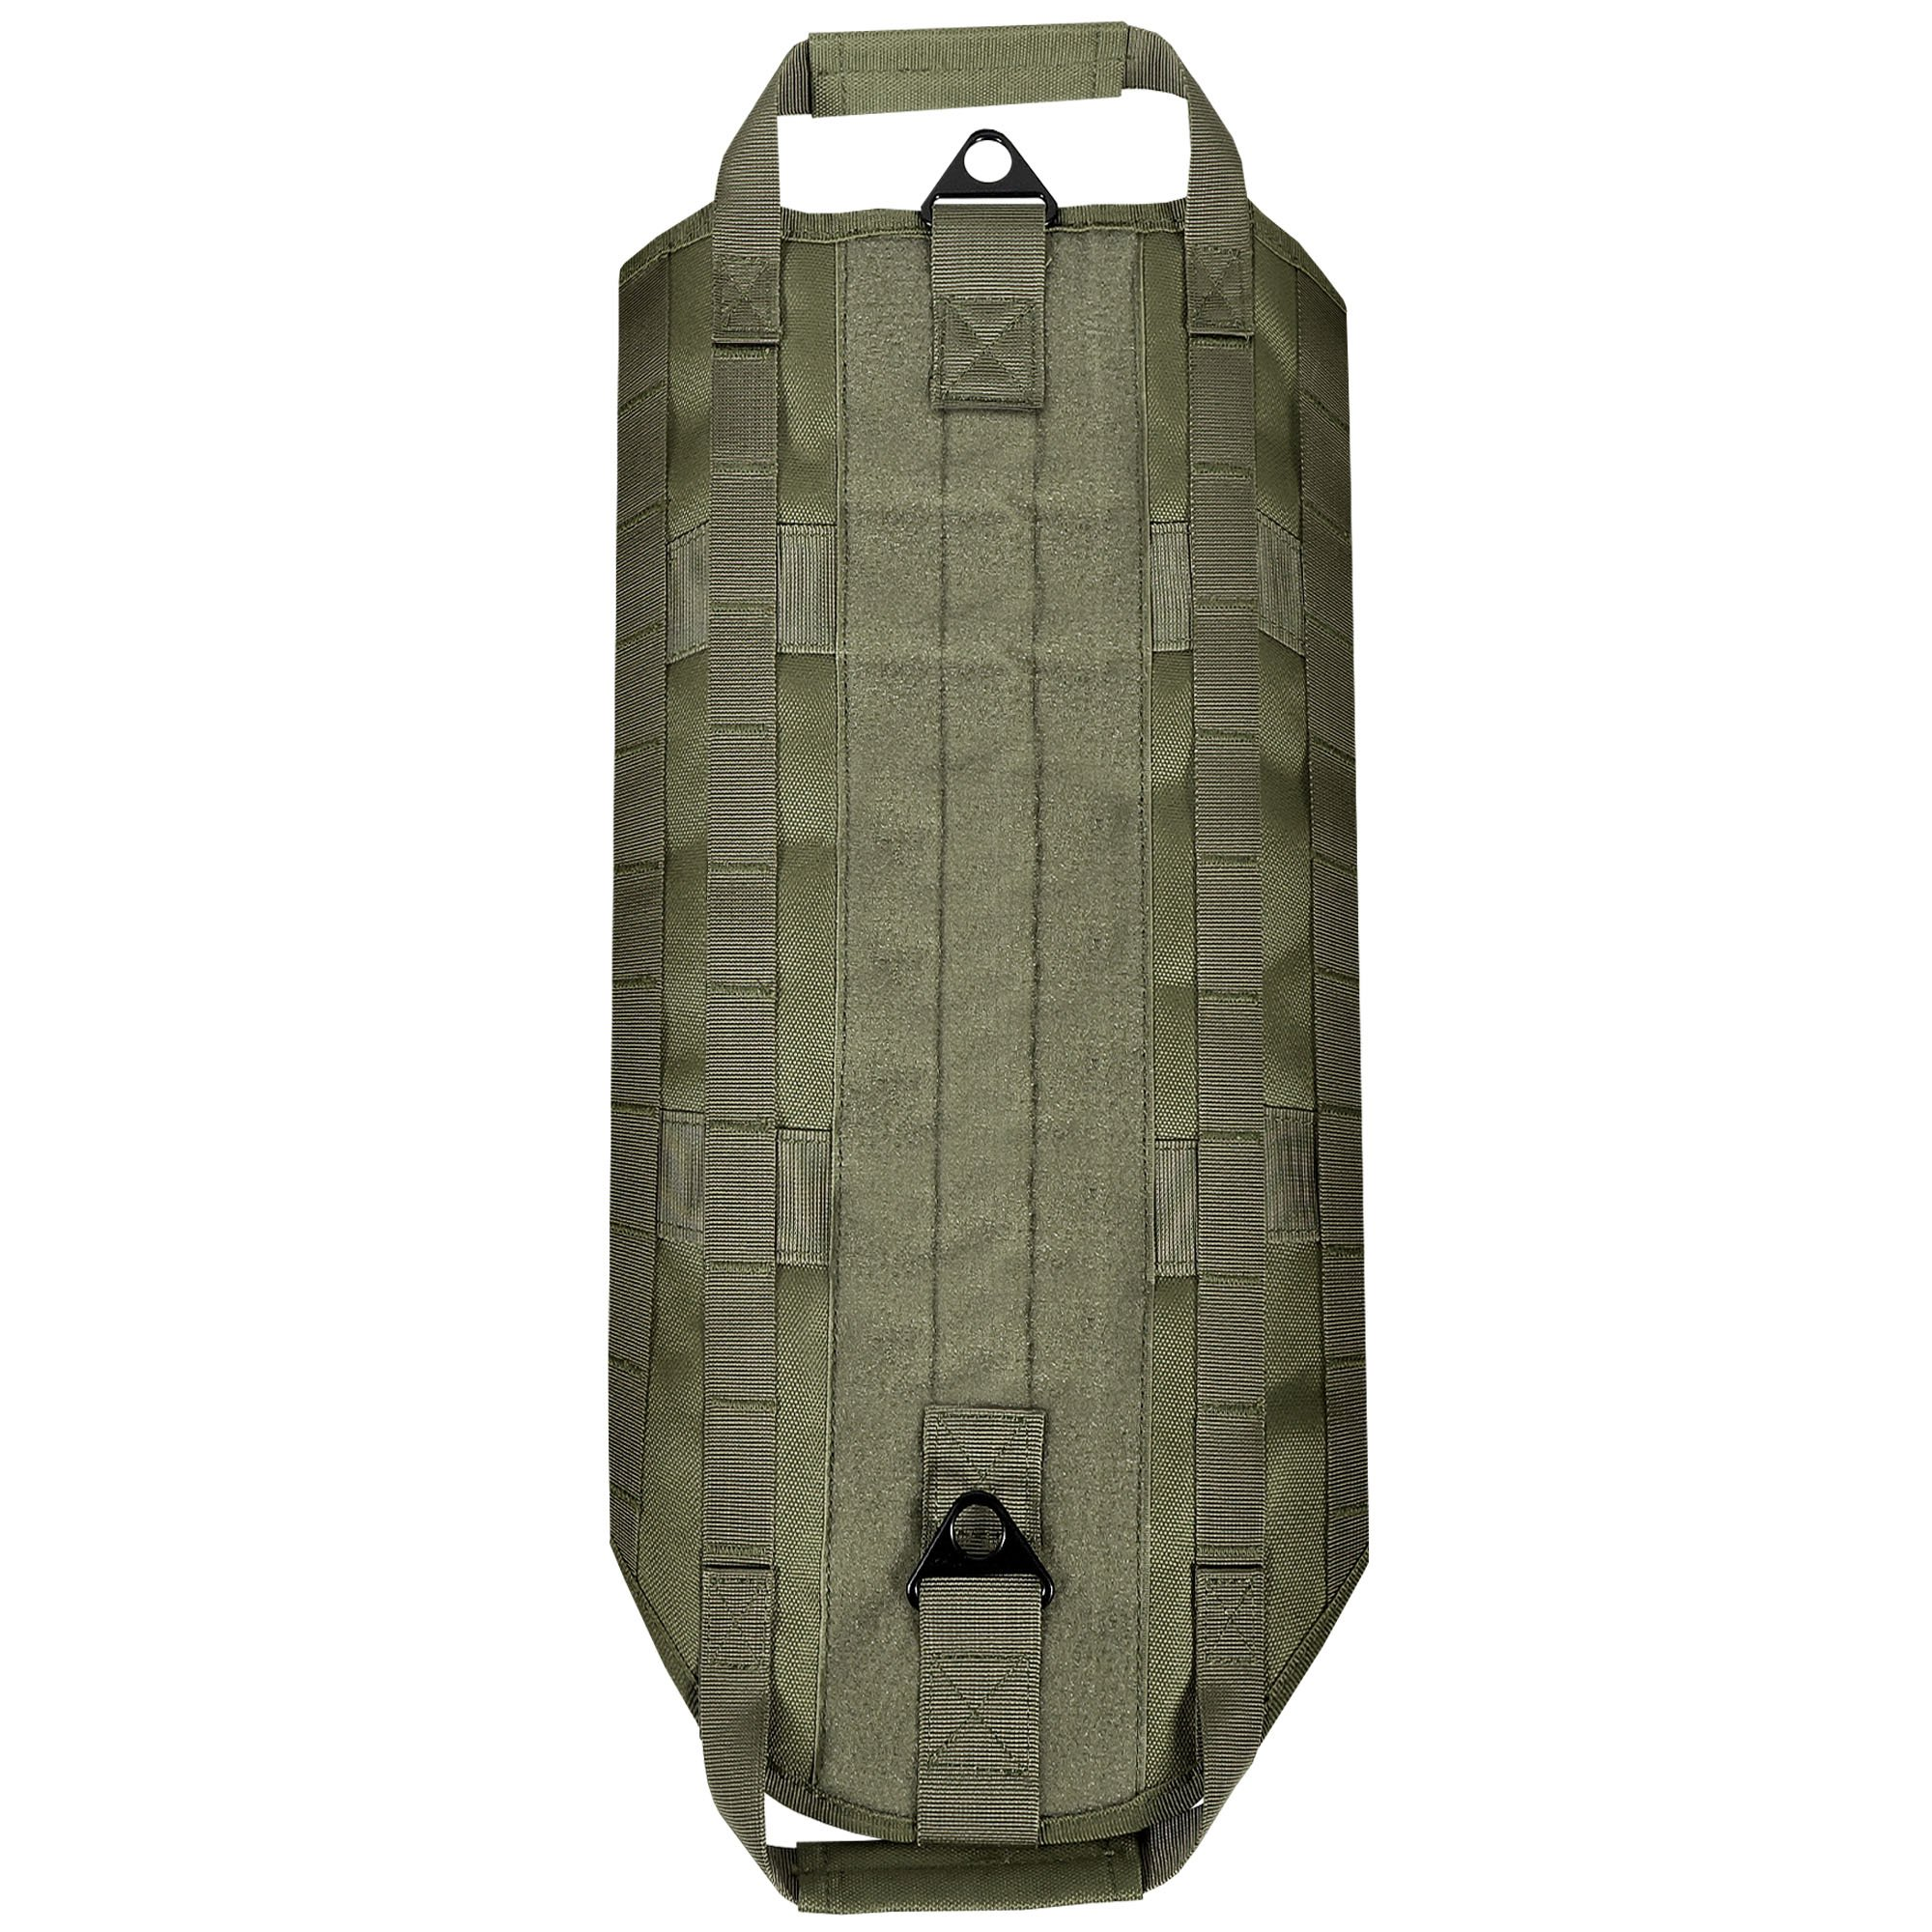 LIVABIT [ OD Green Canine Service Dog Tactical Molle Vest Harness XX-Large